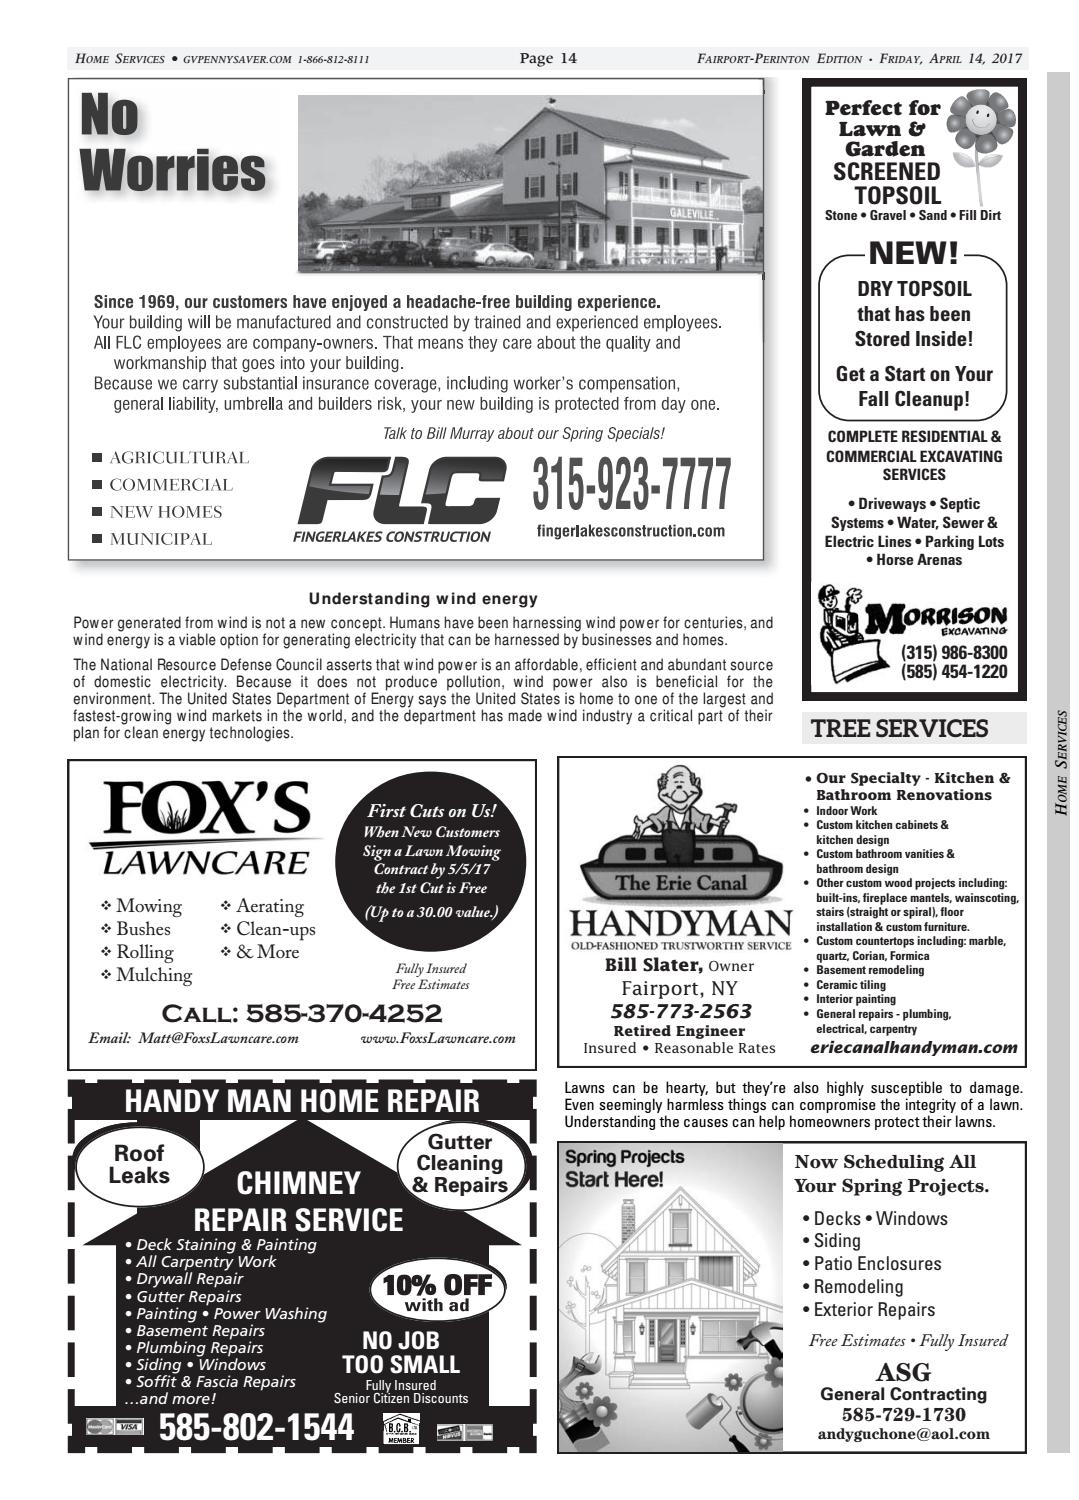 The Genesee Valley Penny Saver Fairport-Perinton Edition 4/14/17 by